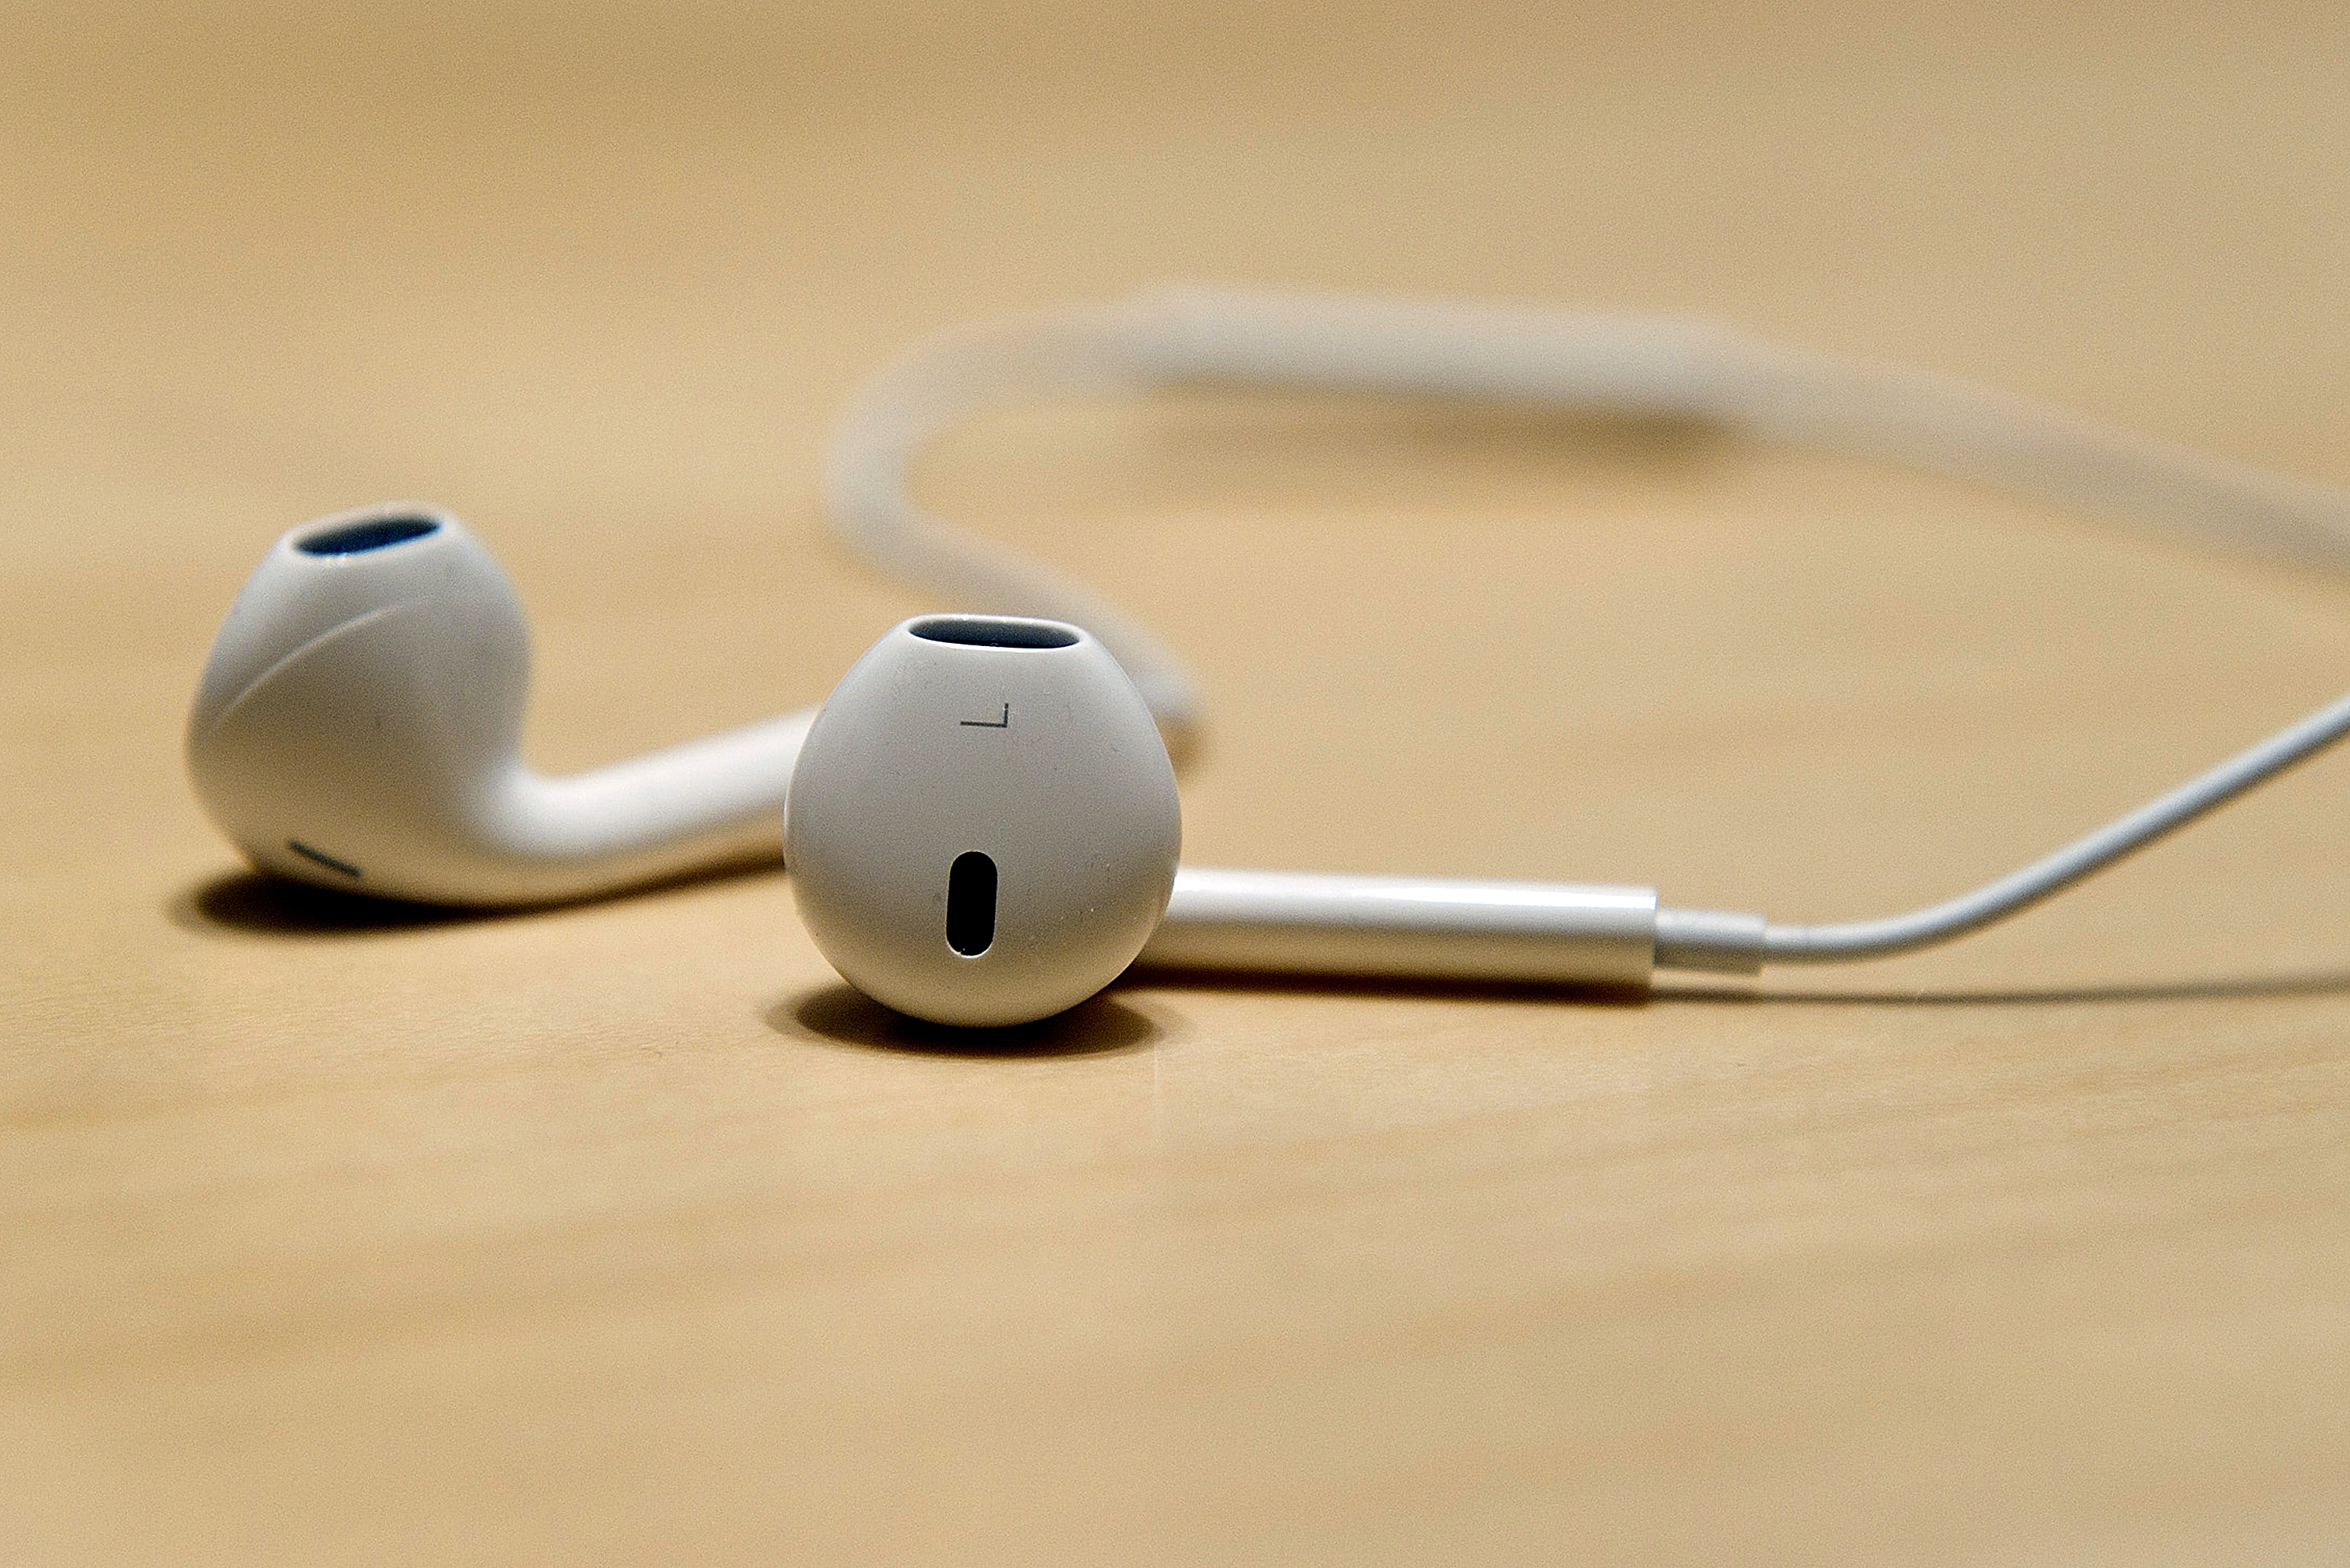 The new Apple Inc. earbuds are displayed for a photograph during an event in San Francisco, California, U.S., on Wednesday, Sept. 12, 2012. Apple Inc. unveiled the iPhone 5 in an overhaul aimed at widening its lead over Samsung Electronics Co. and Google Inc. in the $219.1 billion smartphone market.